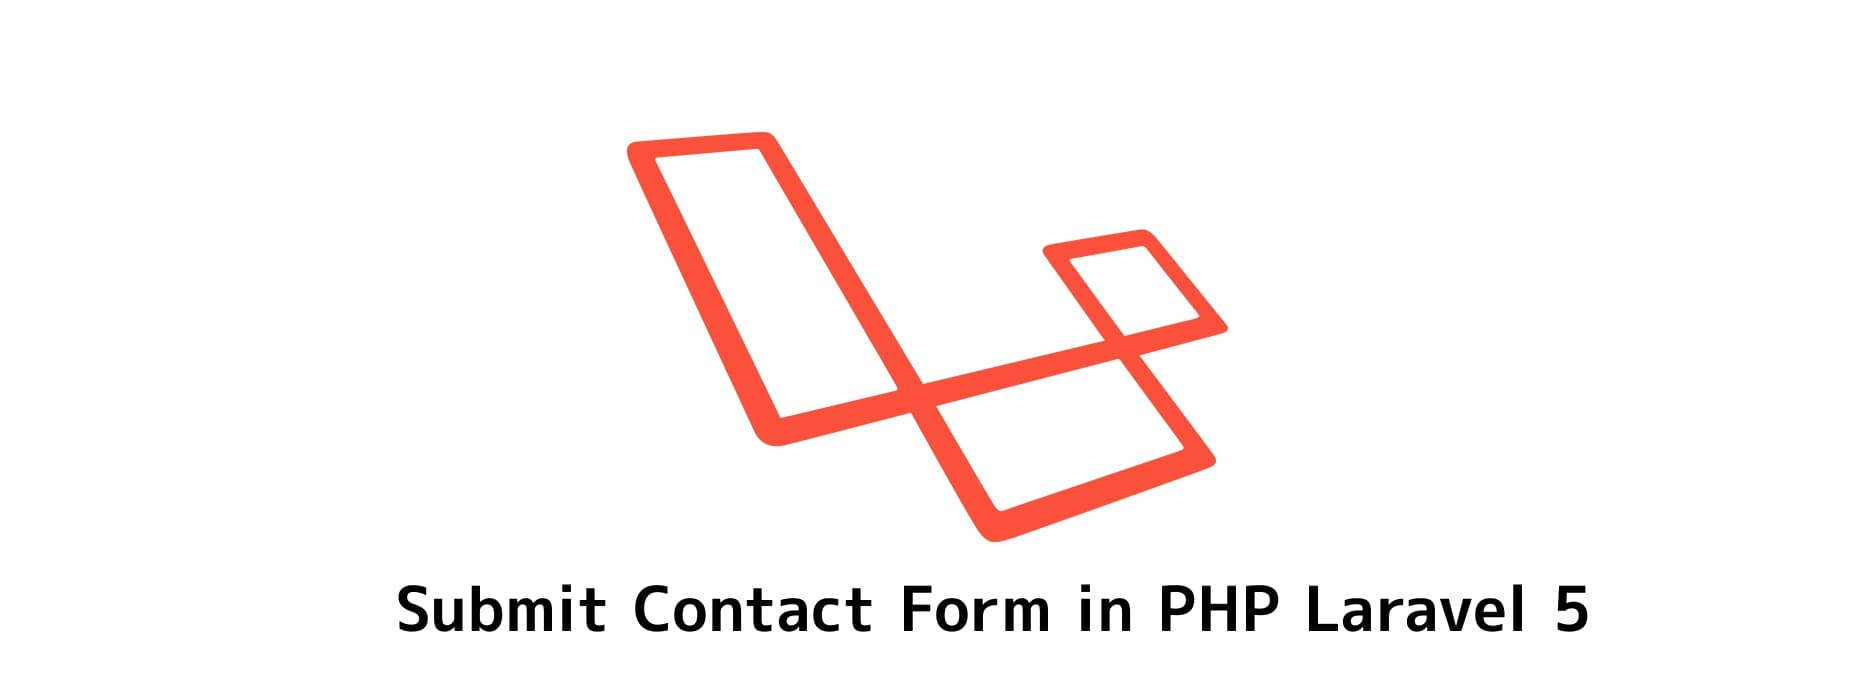 How to create custom facade in laravel 5 2 - ExpertPHP